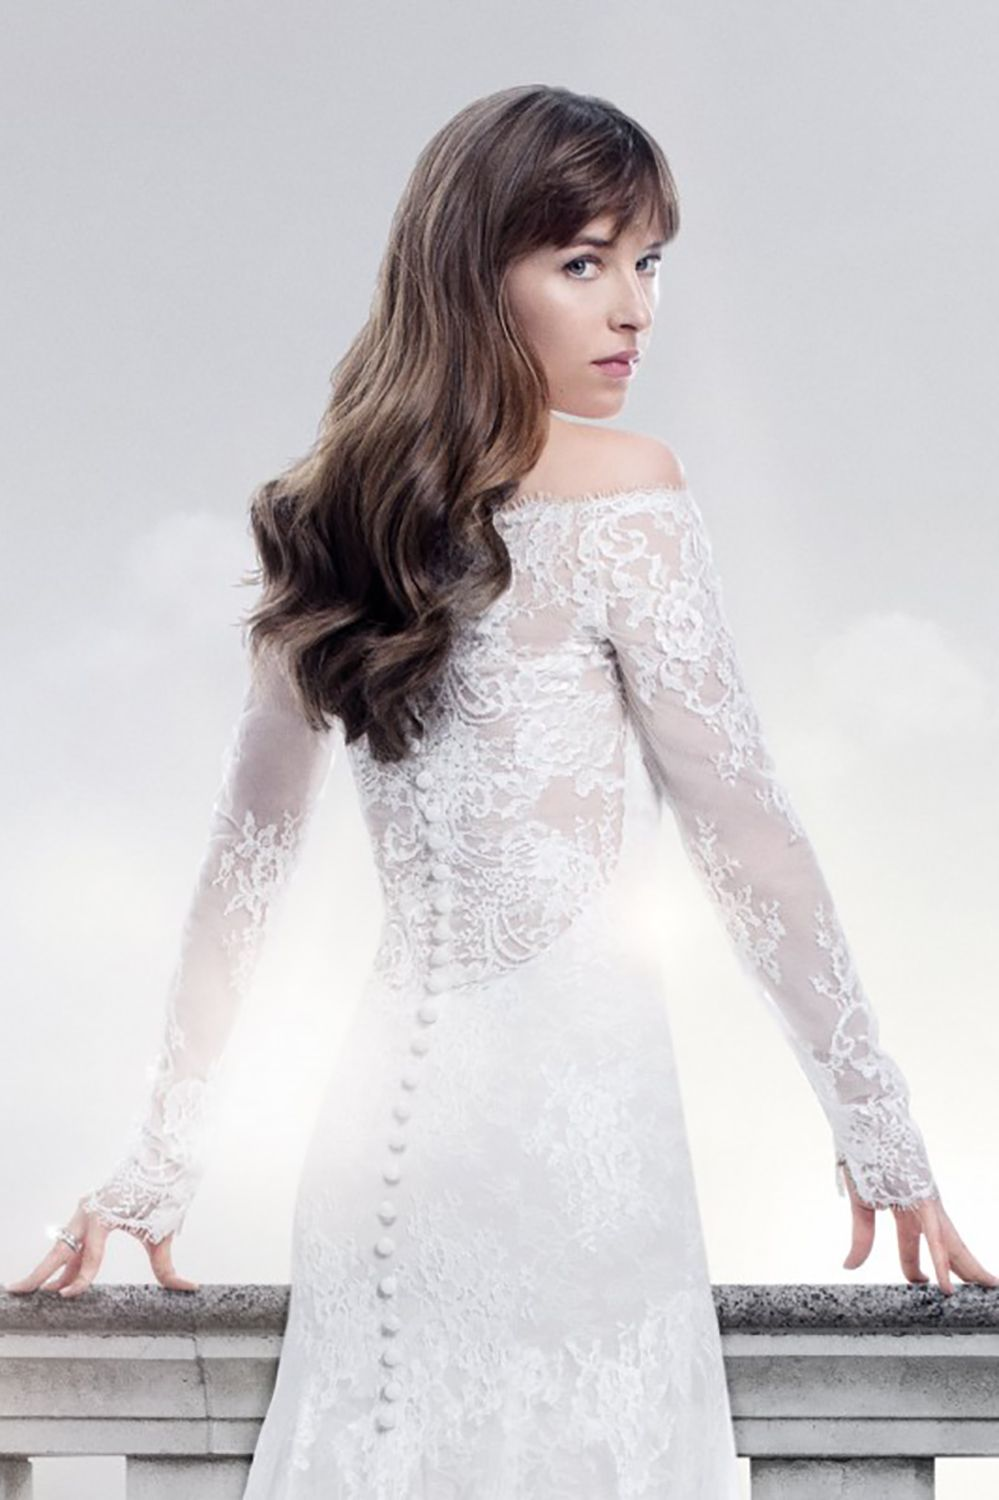 wedding dress iconic Fifty Shades of Freed img